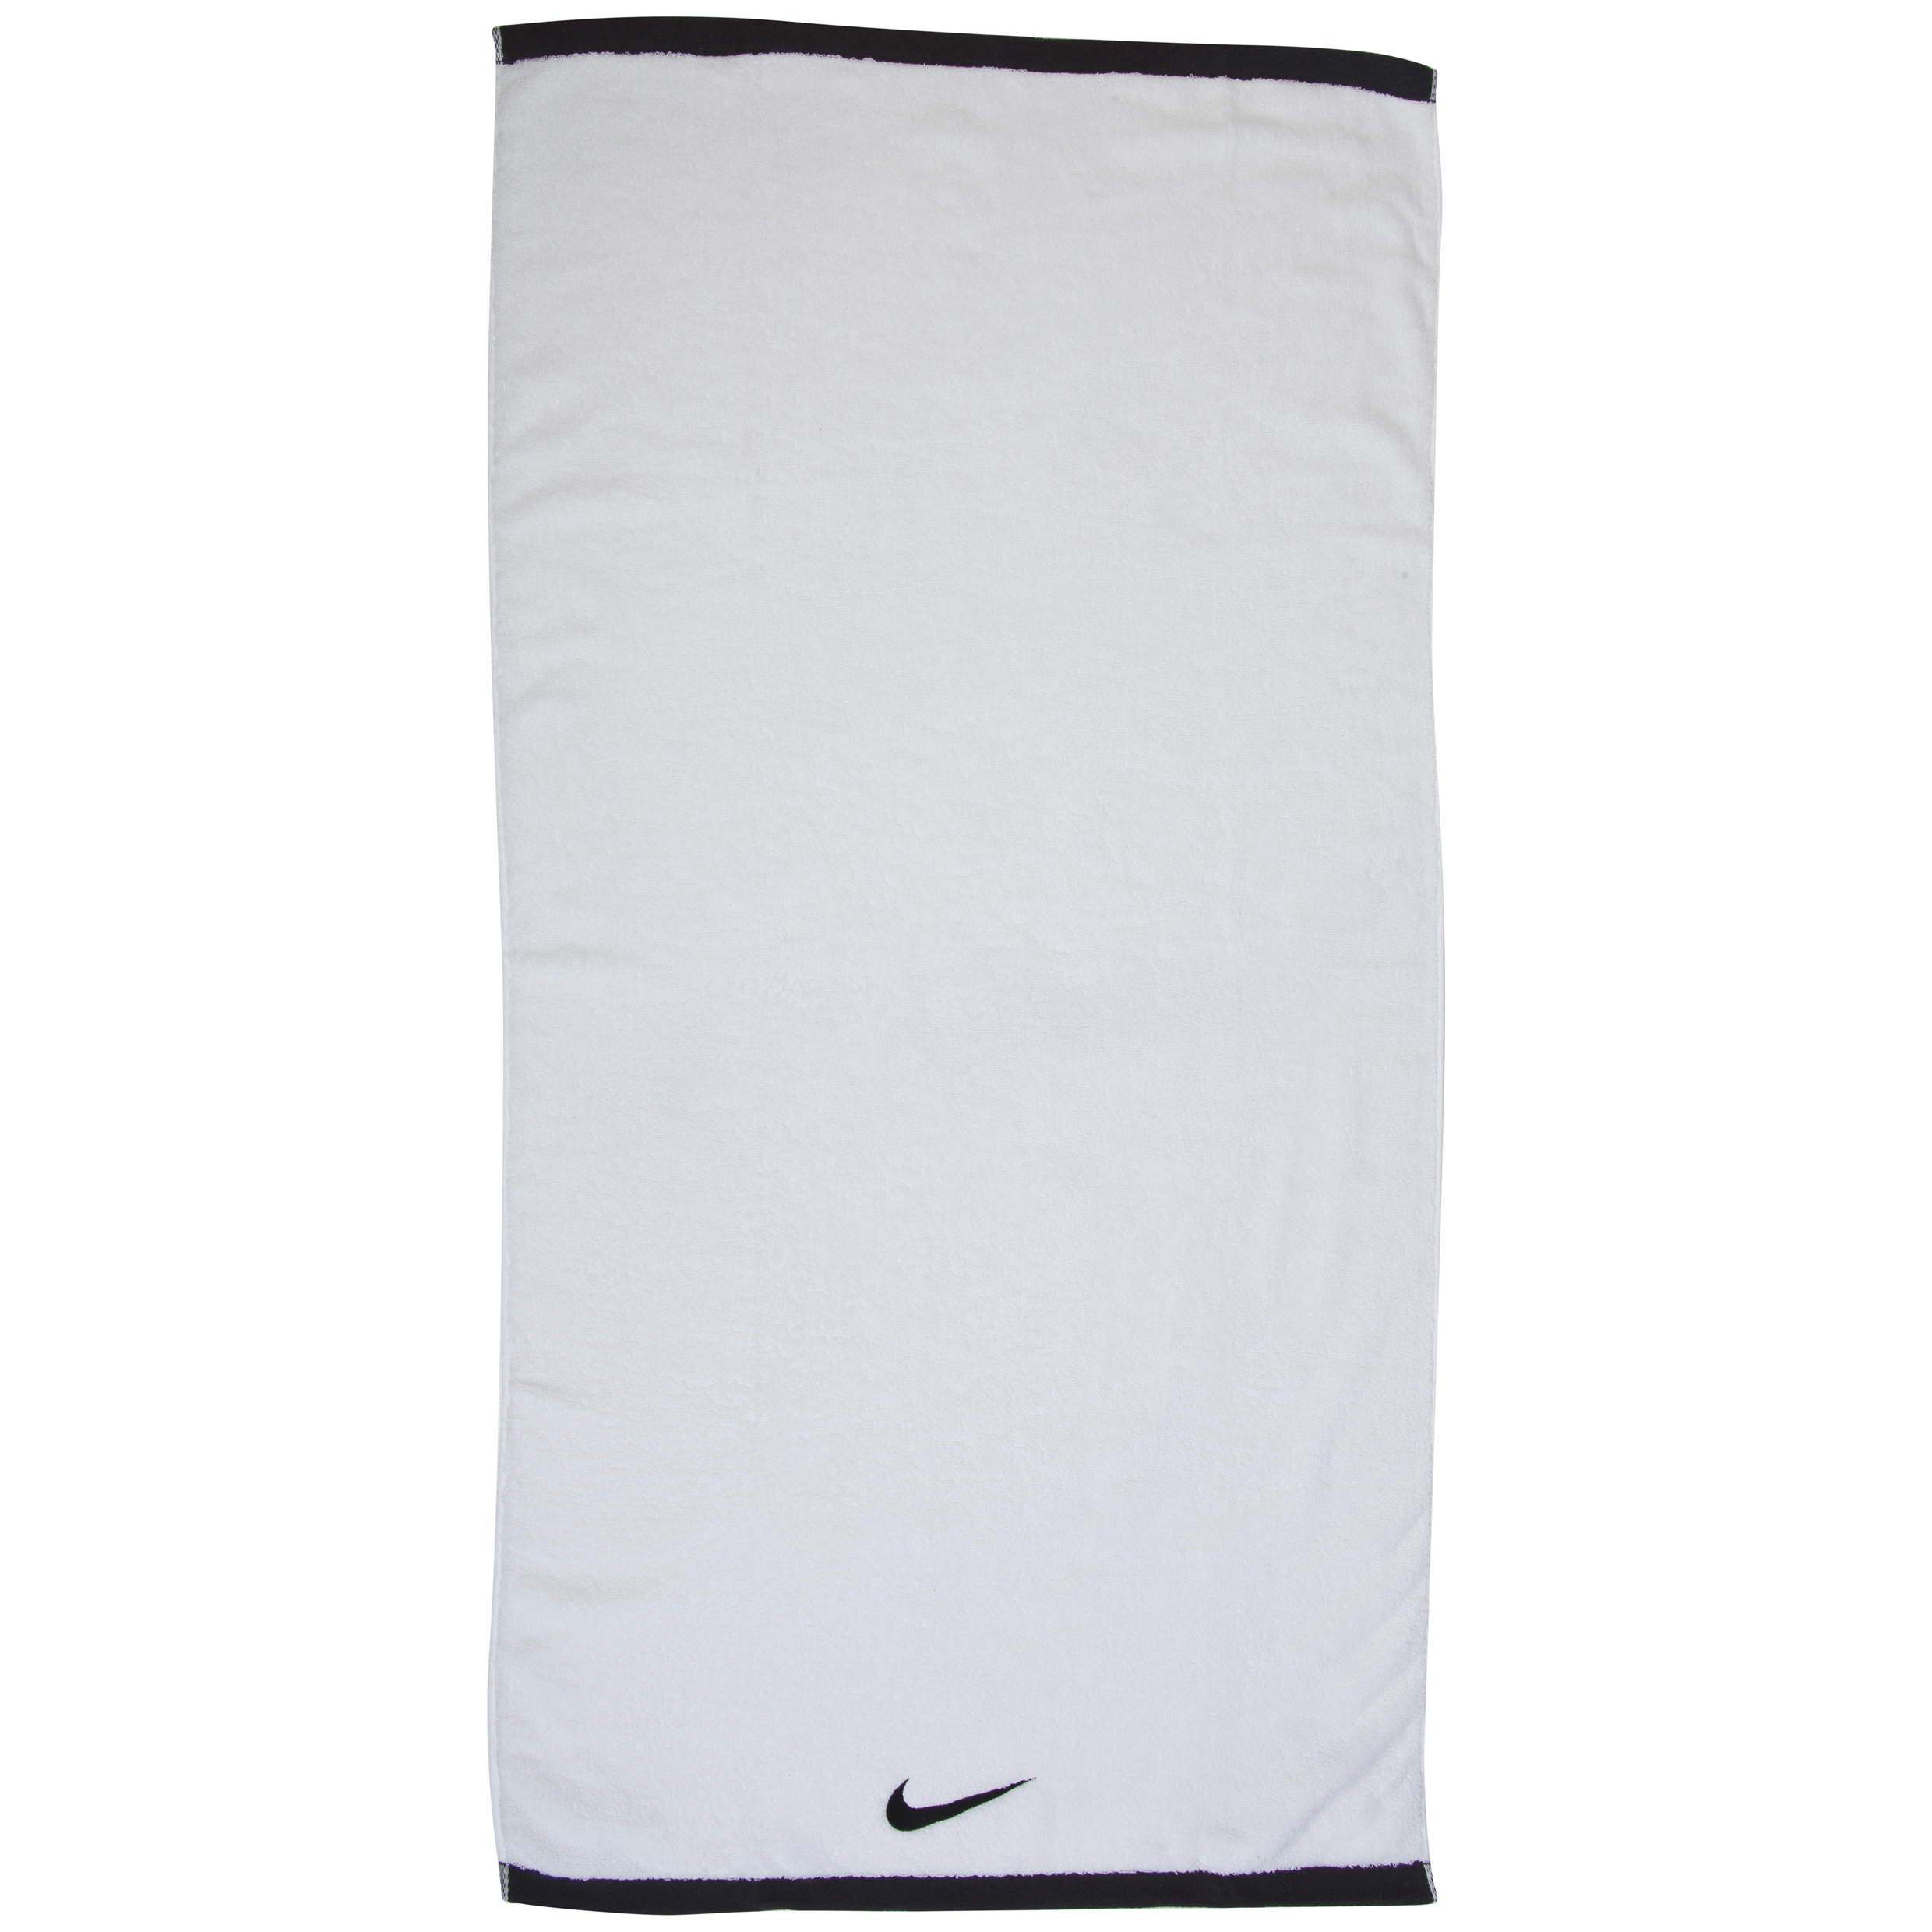 Nike Fundamental Large Towel - White/Black